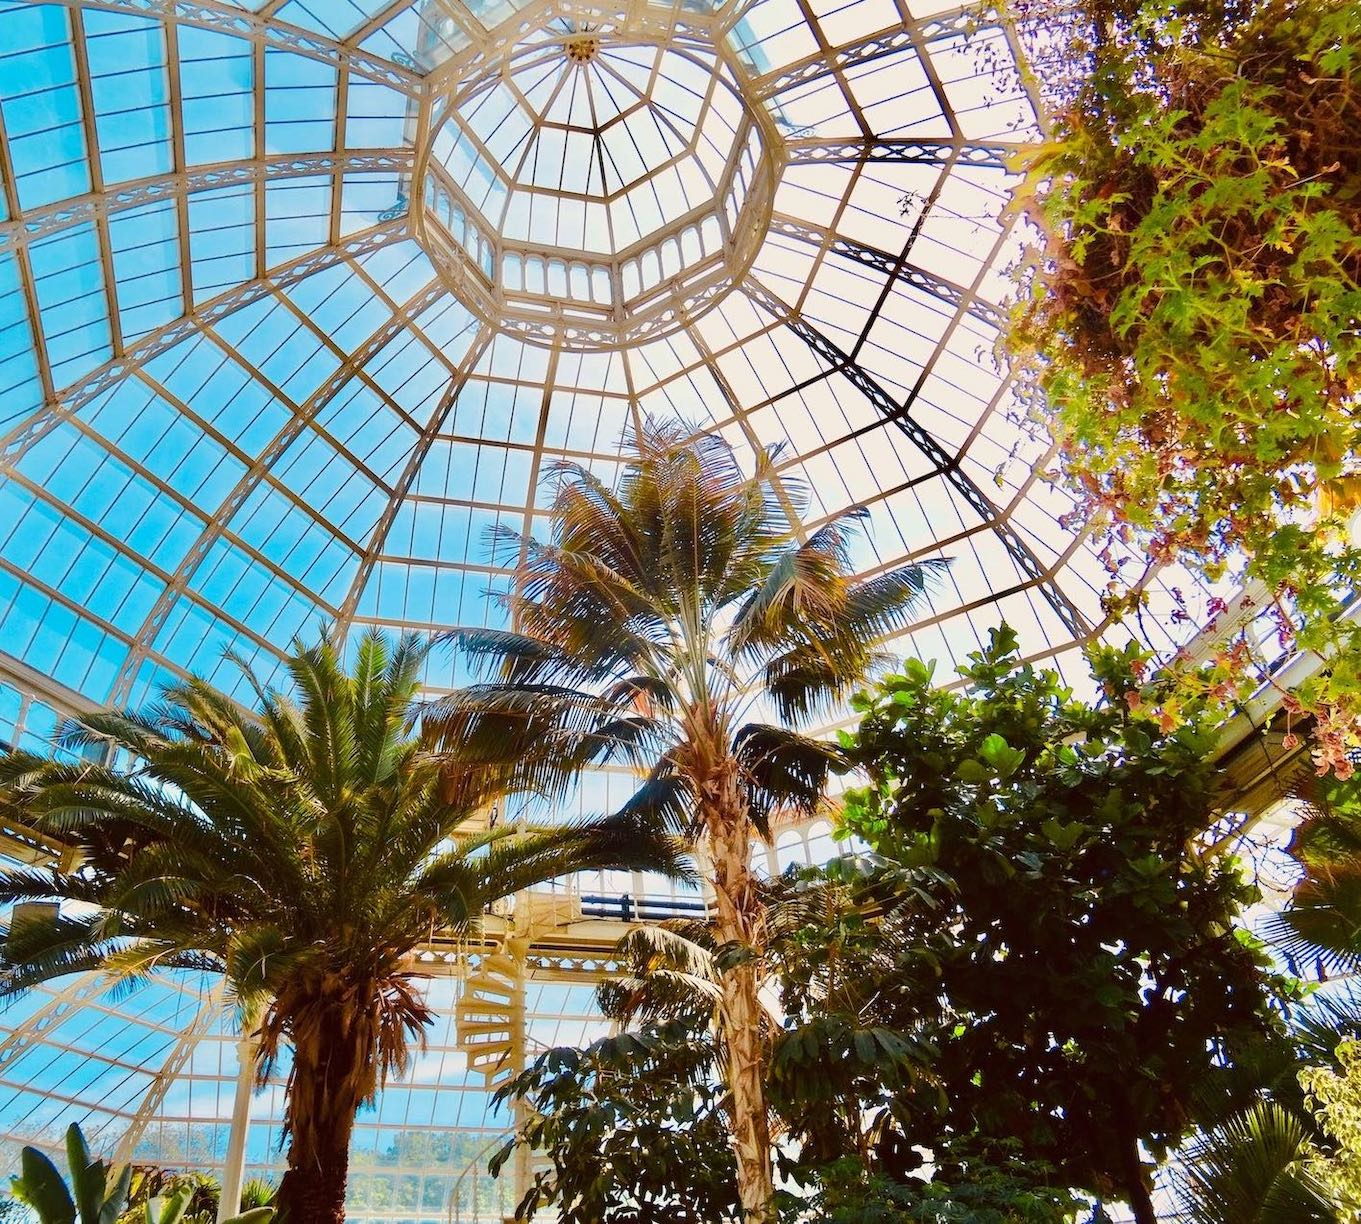 The dome at Palm House Liverpool